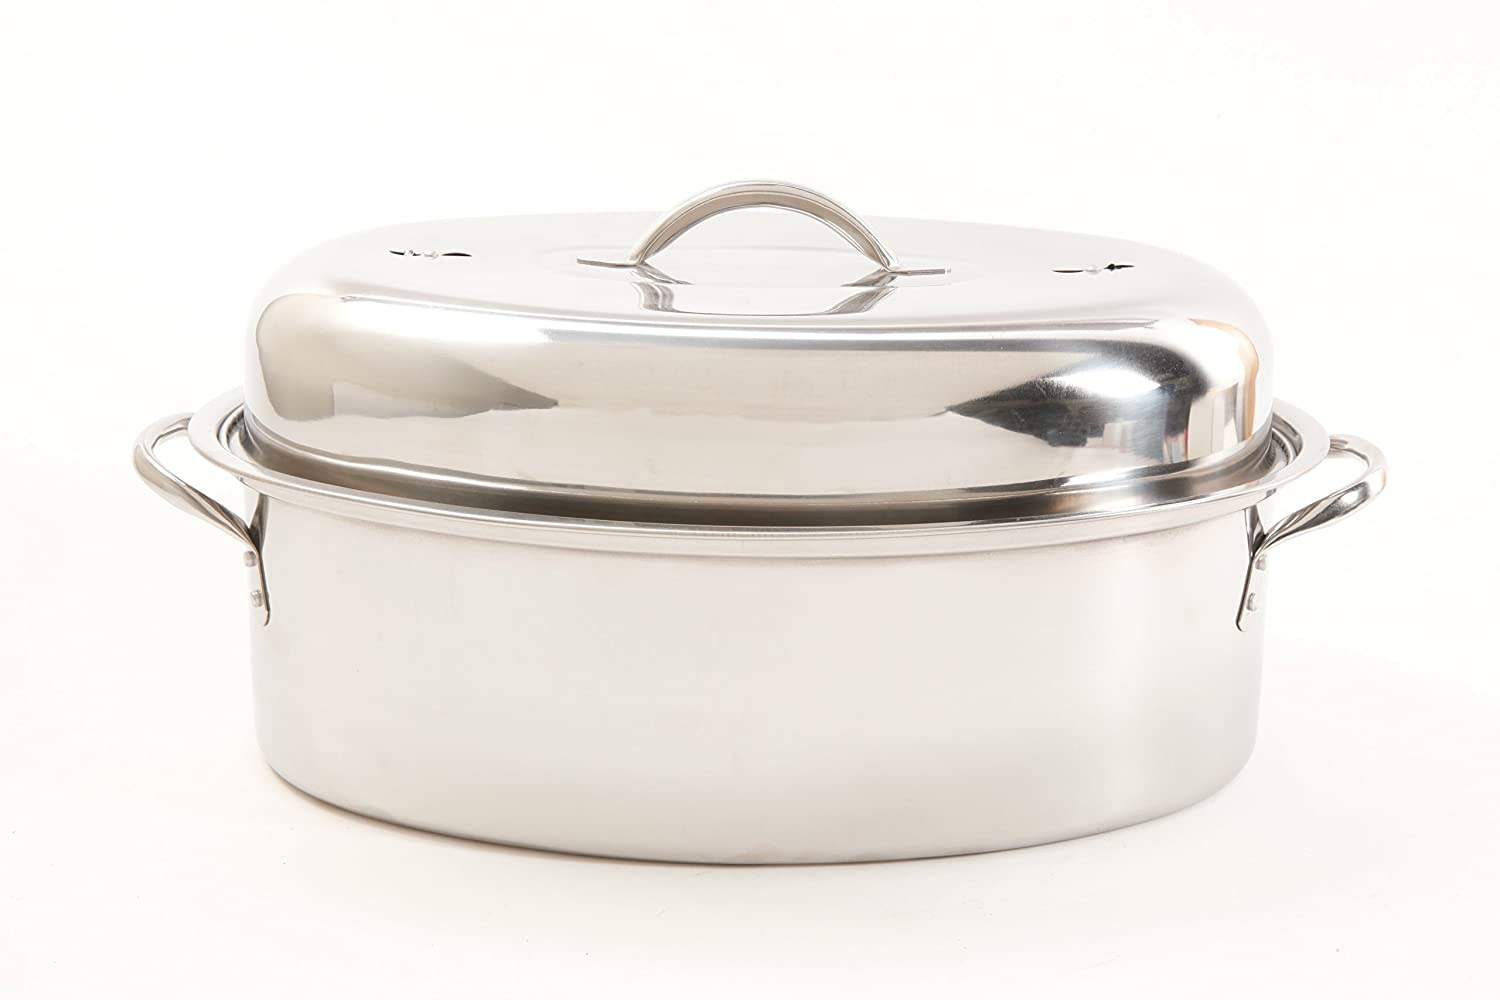 Gibson Home 64207.02 Top Roast 16-Inch Oval Roaster Pan with Lid and Rack, Stainless Steel